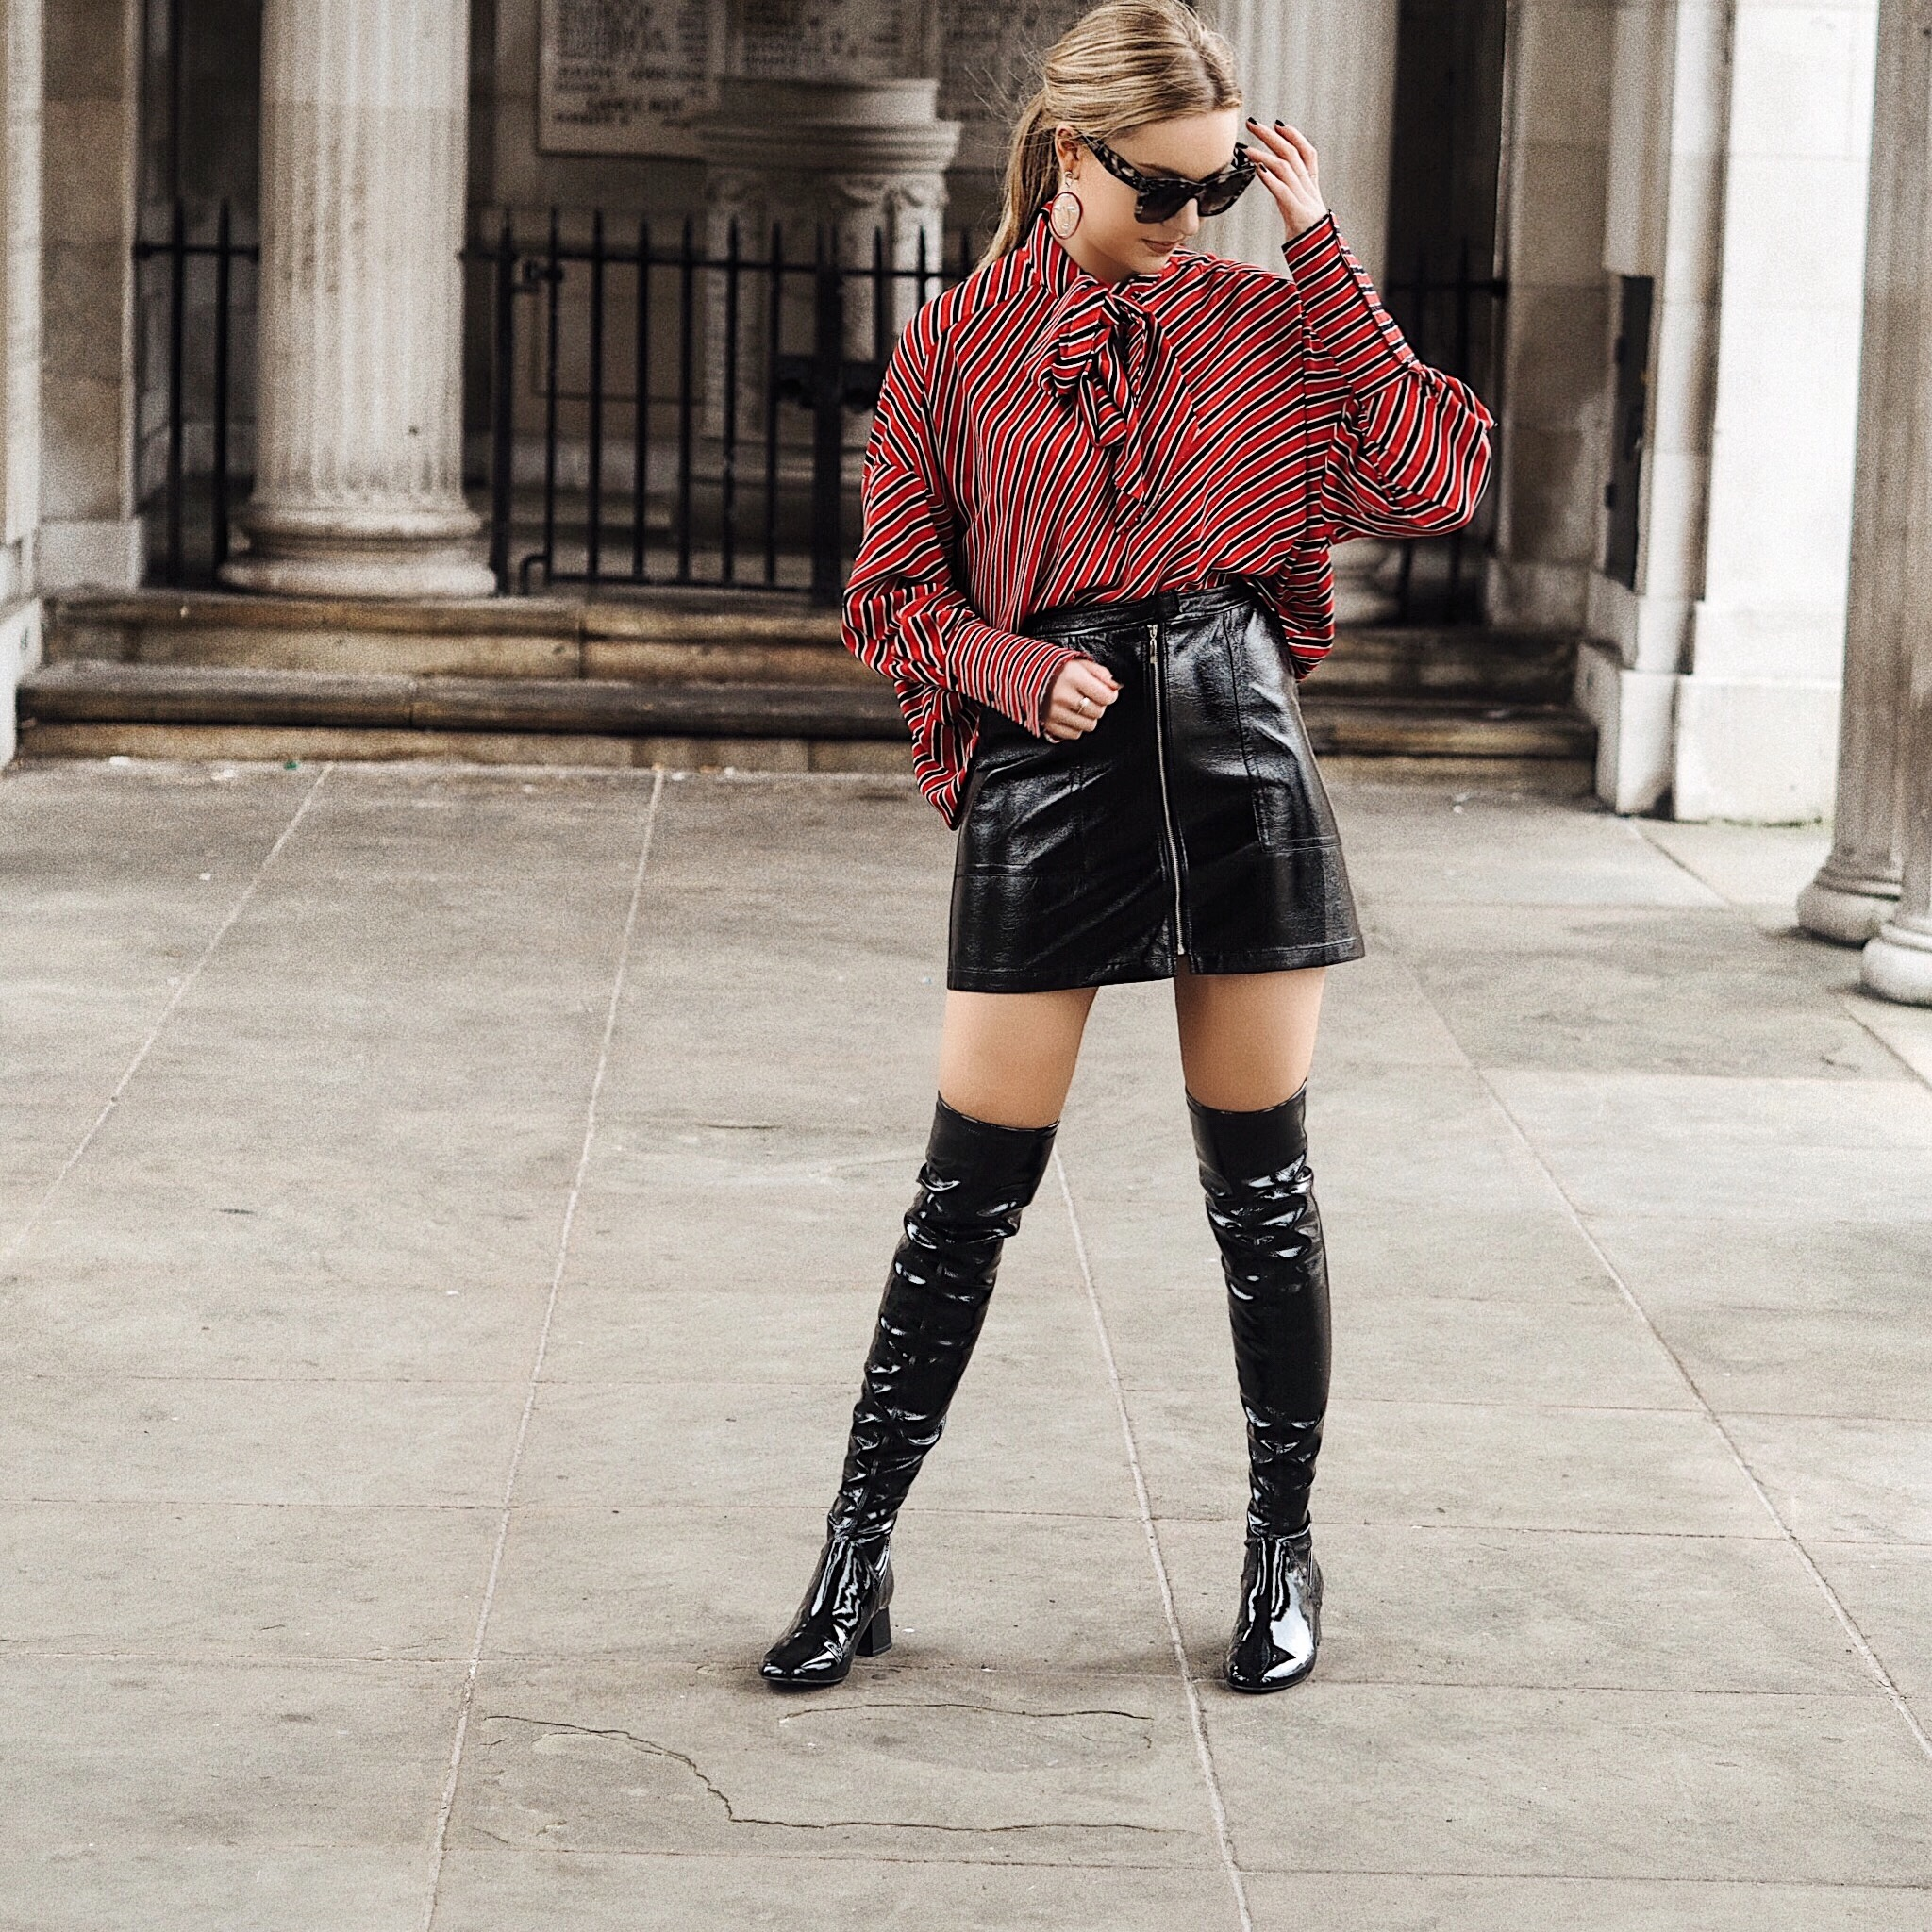 pvc-over-the-knee-boots - Lydia Tomlinson